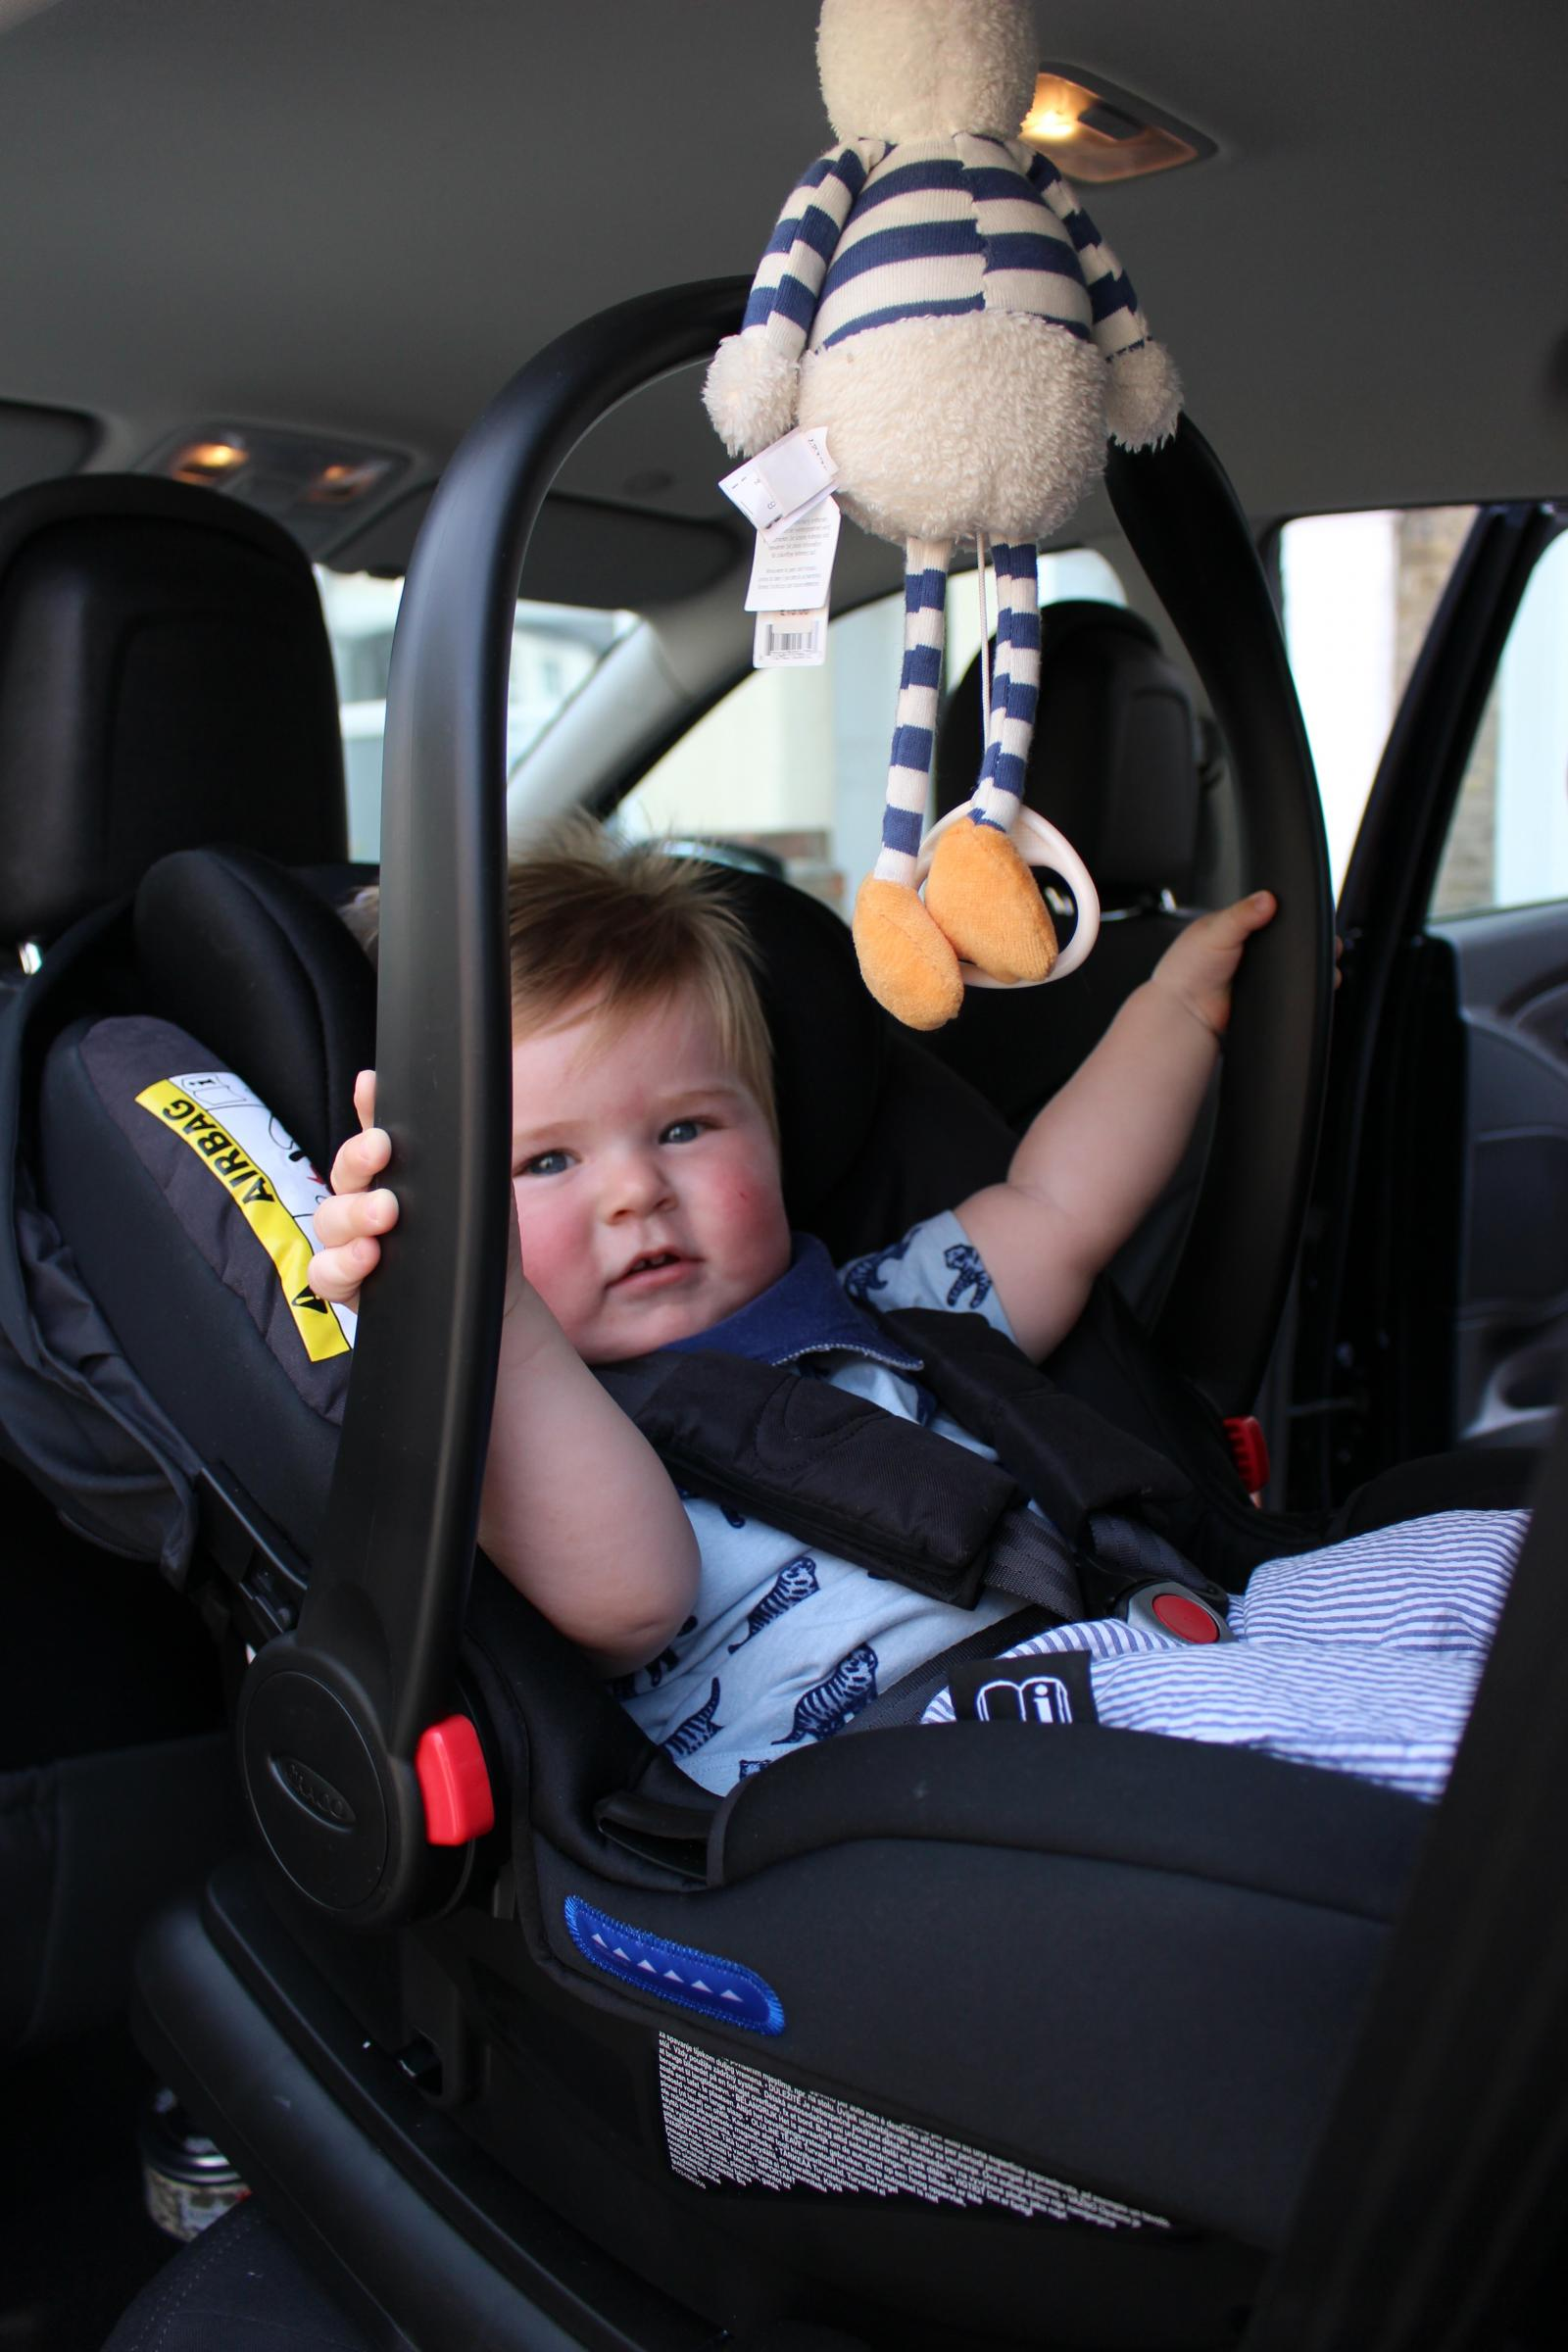 Graco car seat - top choice for dads